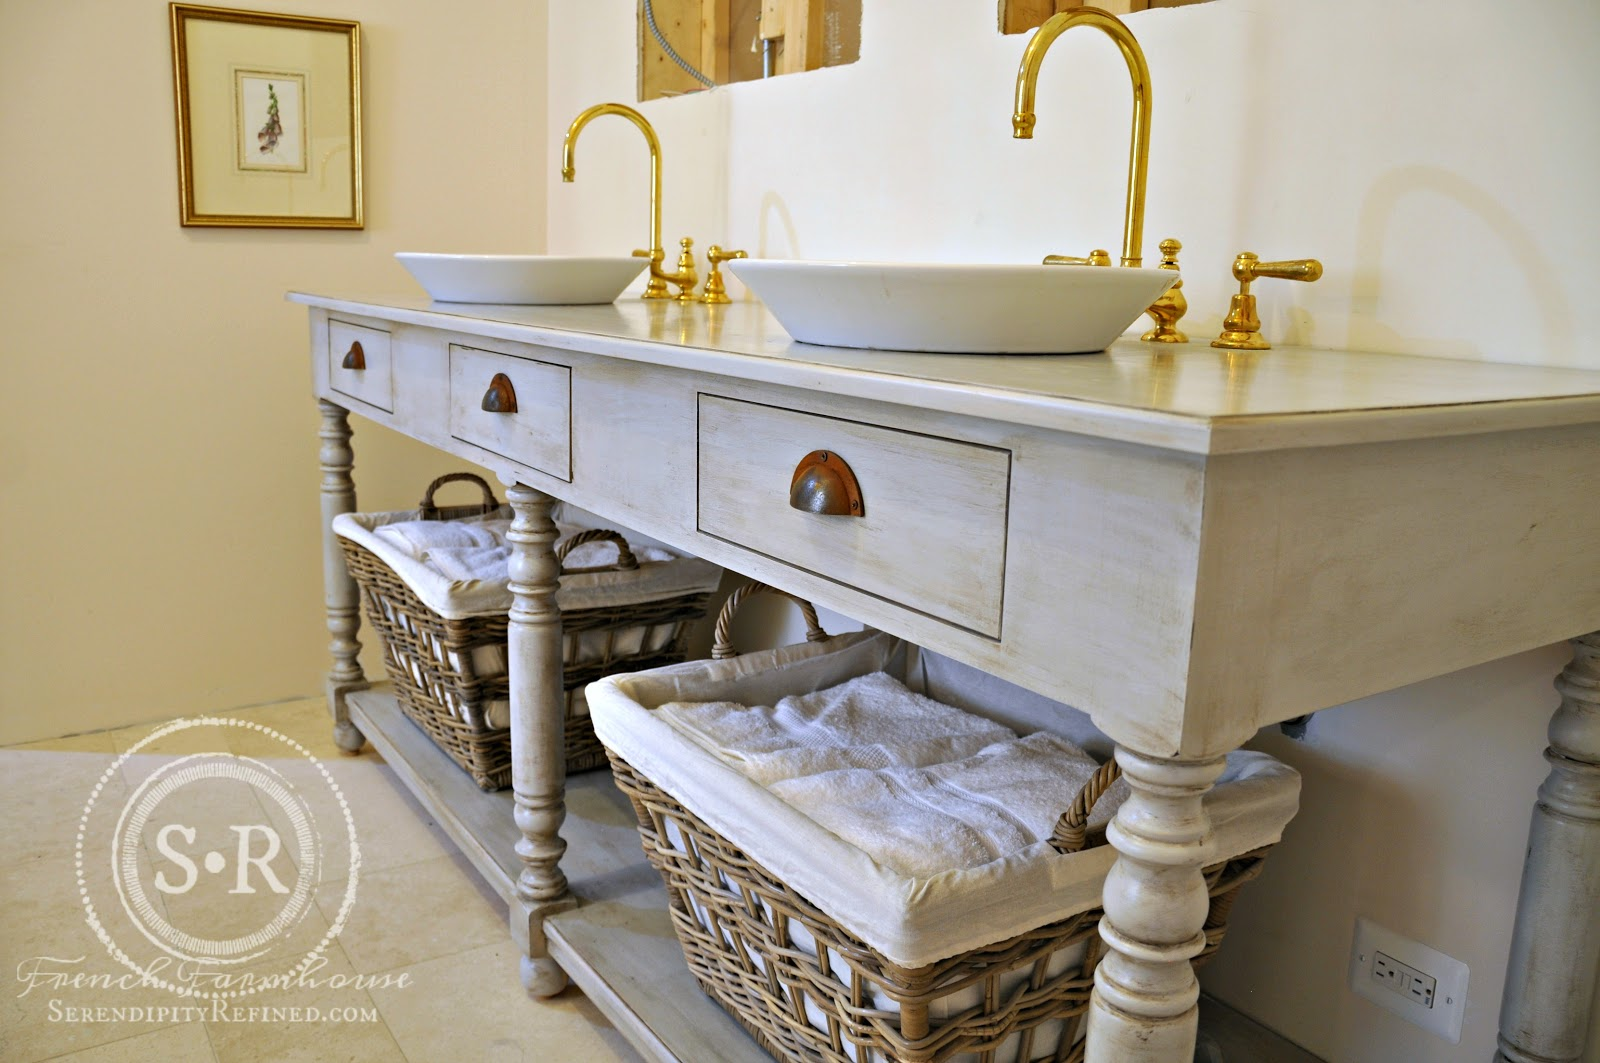 Diy bathroom vanity with vessel sink - I Love The Way That The Soft Gray Color Of The Vanity Works With The Limestone Floor The Diy Painted Finish On My Reproduction French Draper S Table Master